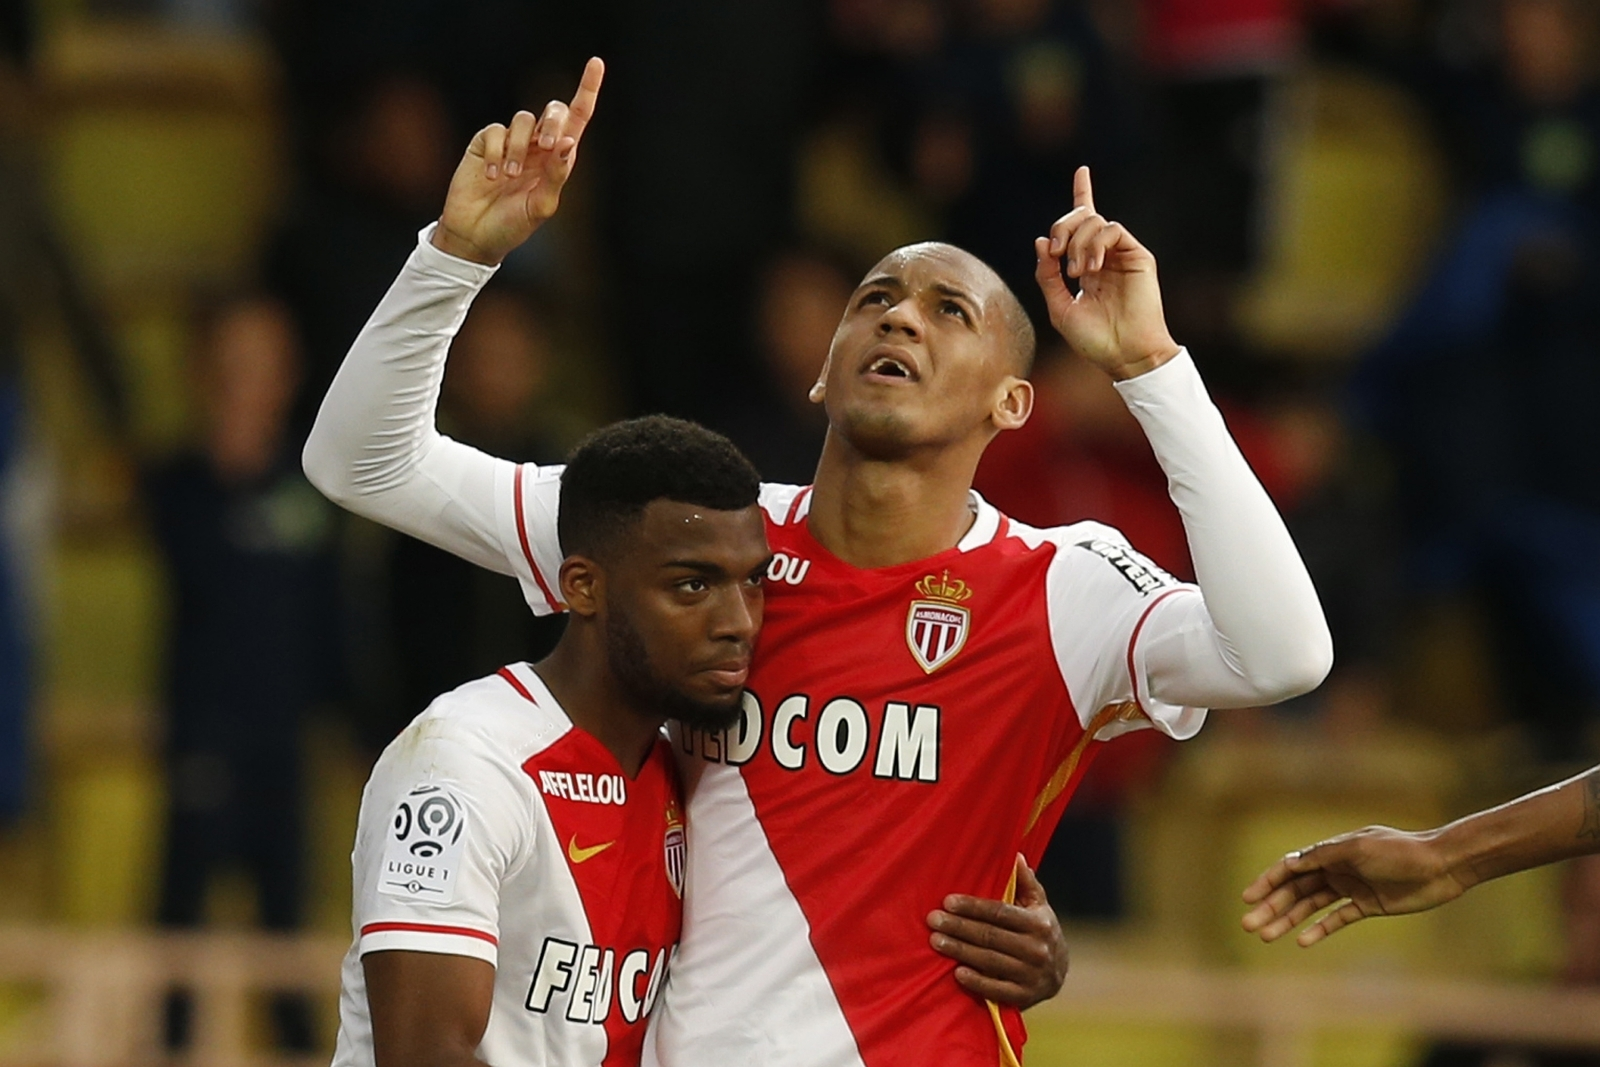 Thomas Lemar and Fabinho